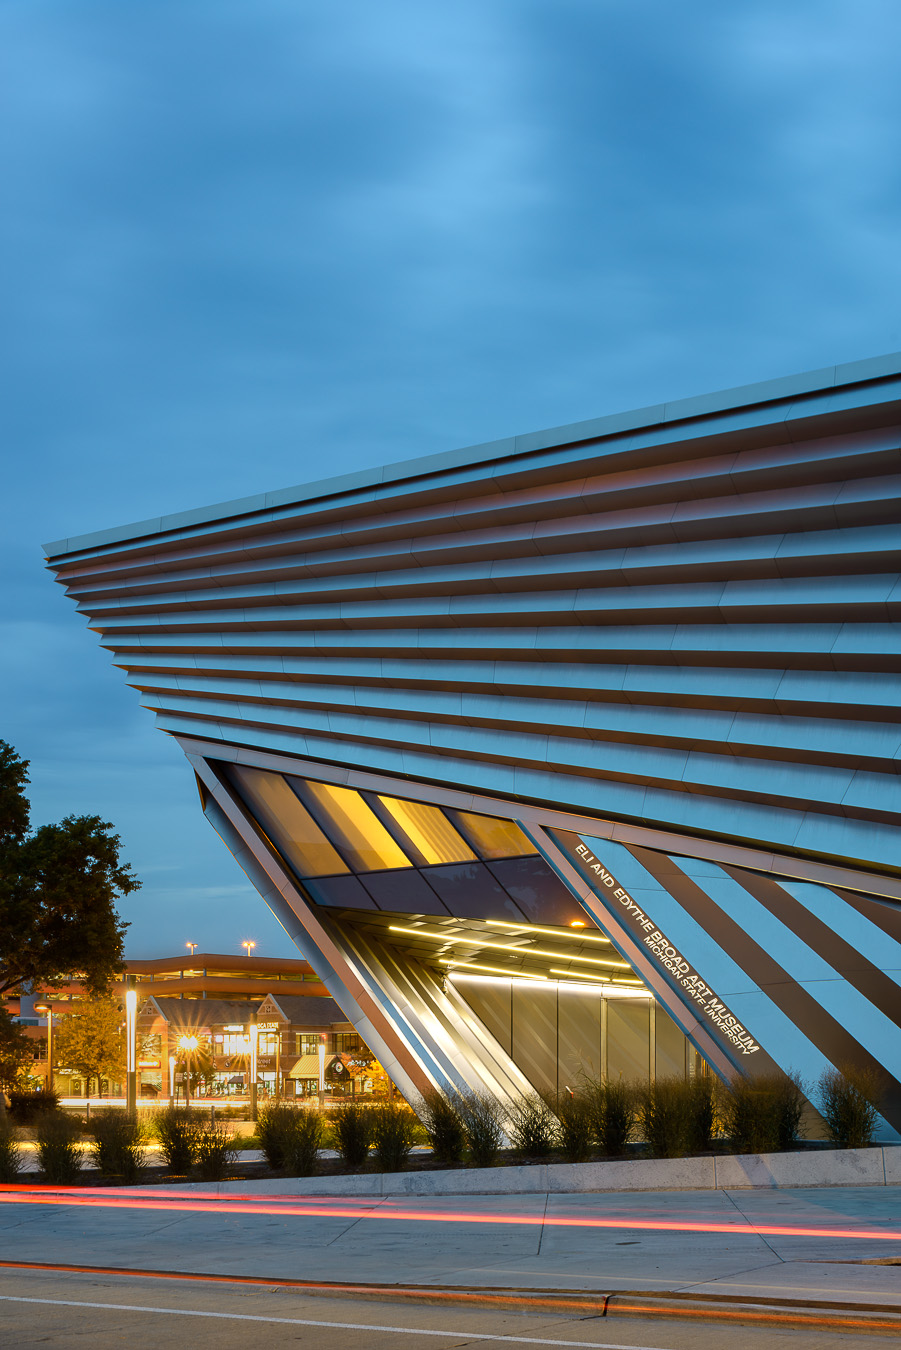 114-Zaha Hadid Broad Museum Lansing Doublespace Toronto Architectural Photography.jpg